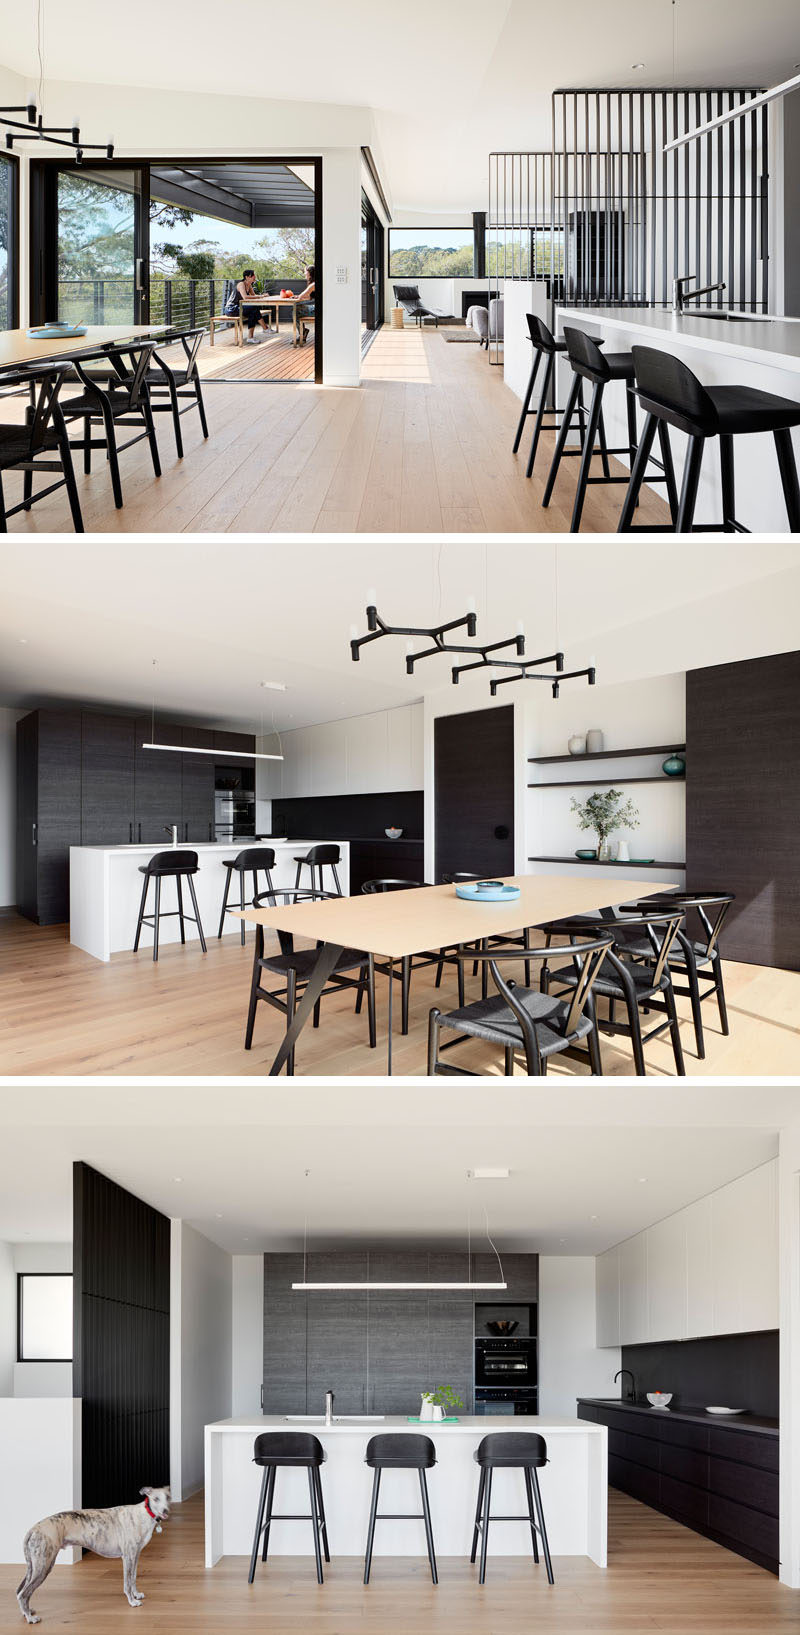 This modern kitchen has a large white island, while dark cabinetry compliments the other dark elements like the dining chairs, counter stools and shelving. #KitchenDesign #ModernKitchen #ModernDiningRoom #DarkCabinets